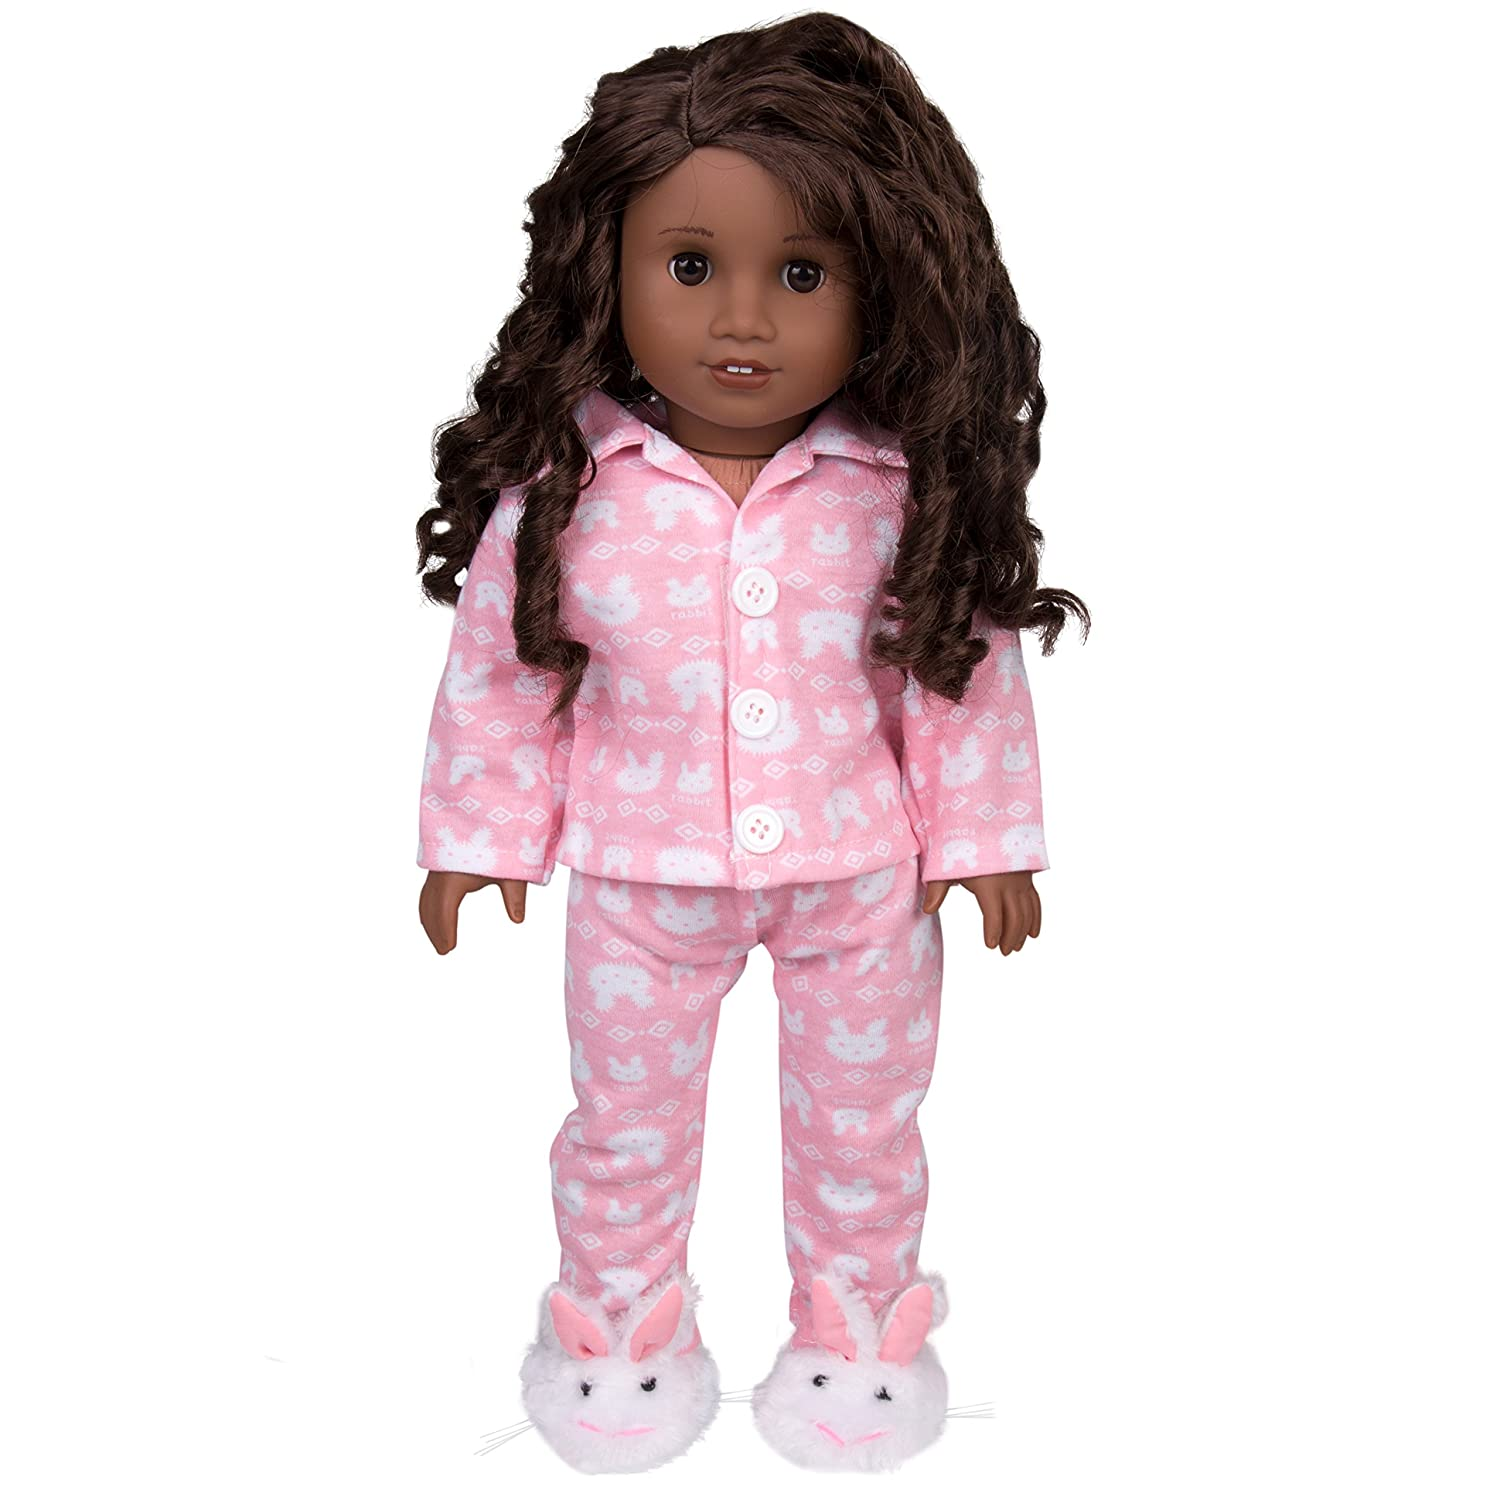 3 Pcs Outfit Including Bunny Shirt Dress Along Dolly Bunny Doll Pajamas for 18 Dolls and Bunny Slippers Ride Along Dolly Pants